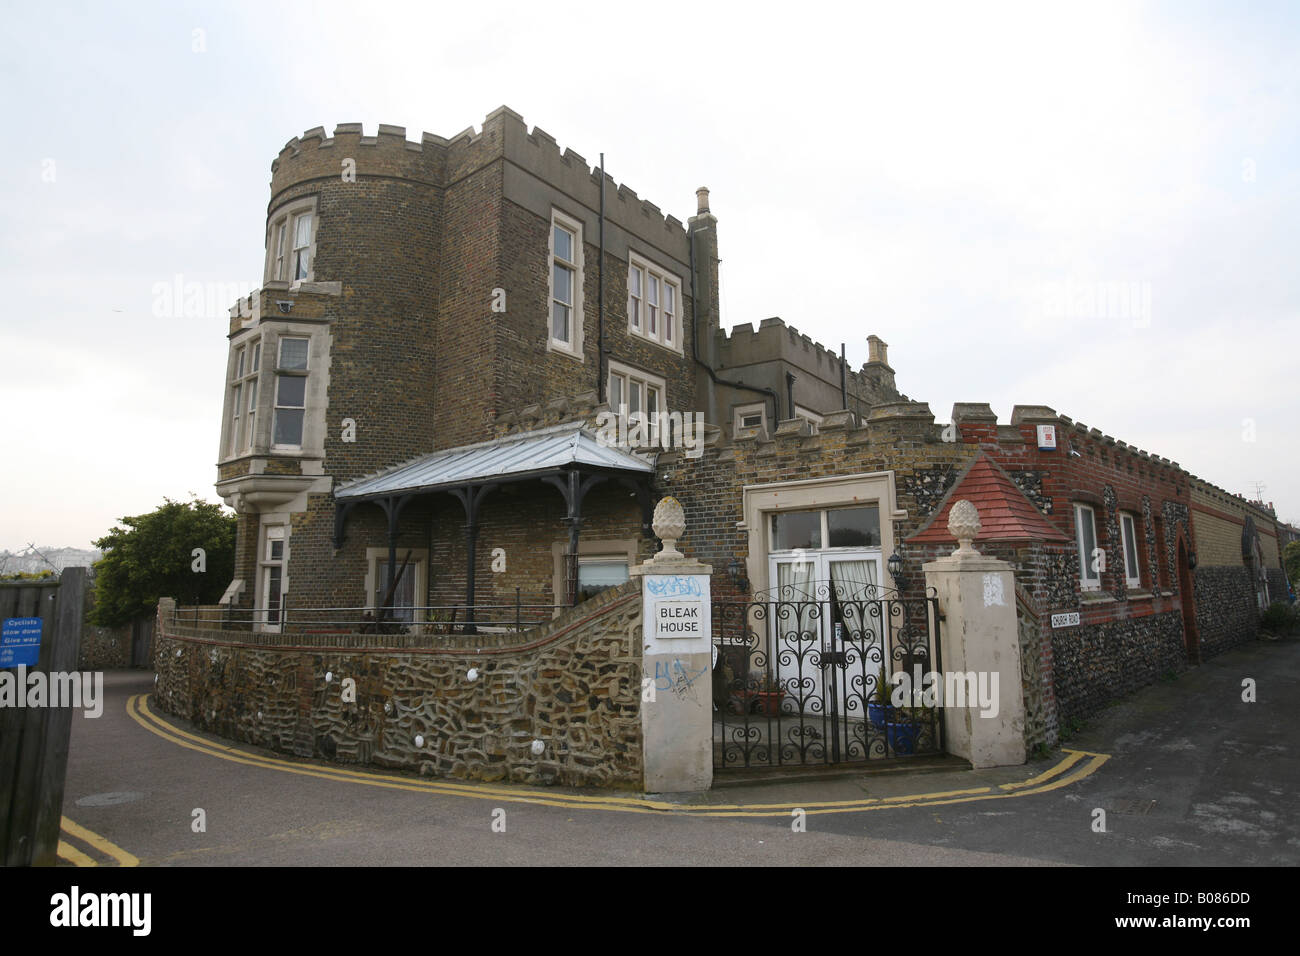 Pic By Paul Grover Pic Shows Bleak House in Broadstairs on the Kent Coast - Stock Image